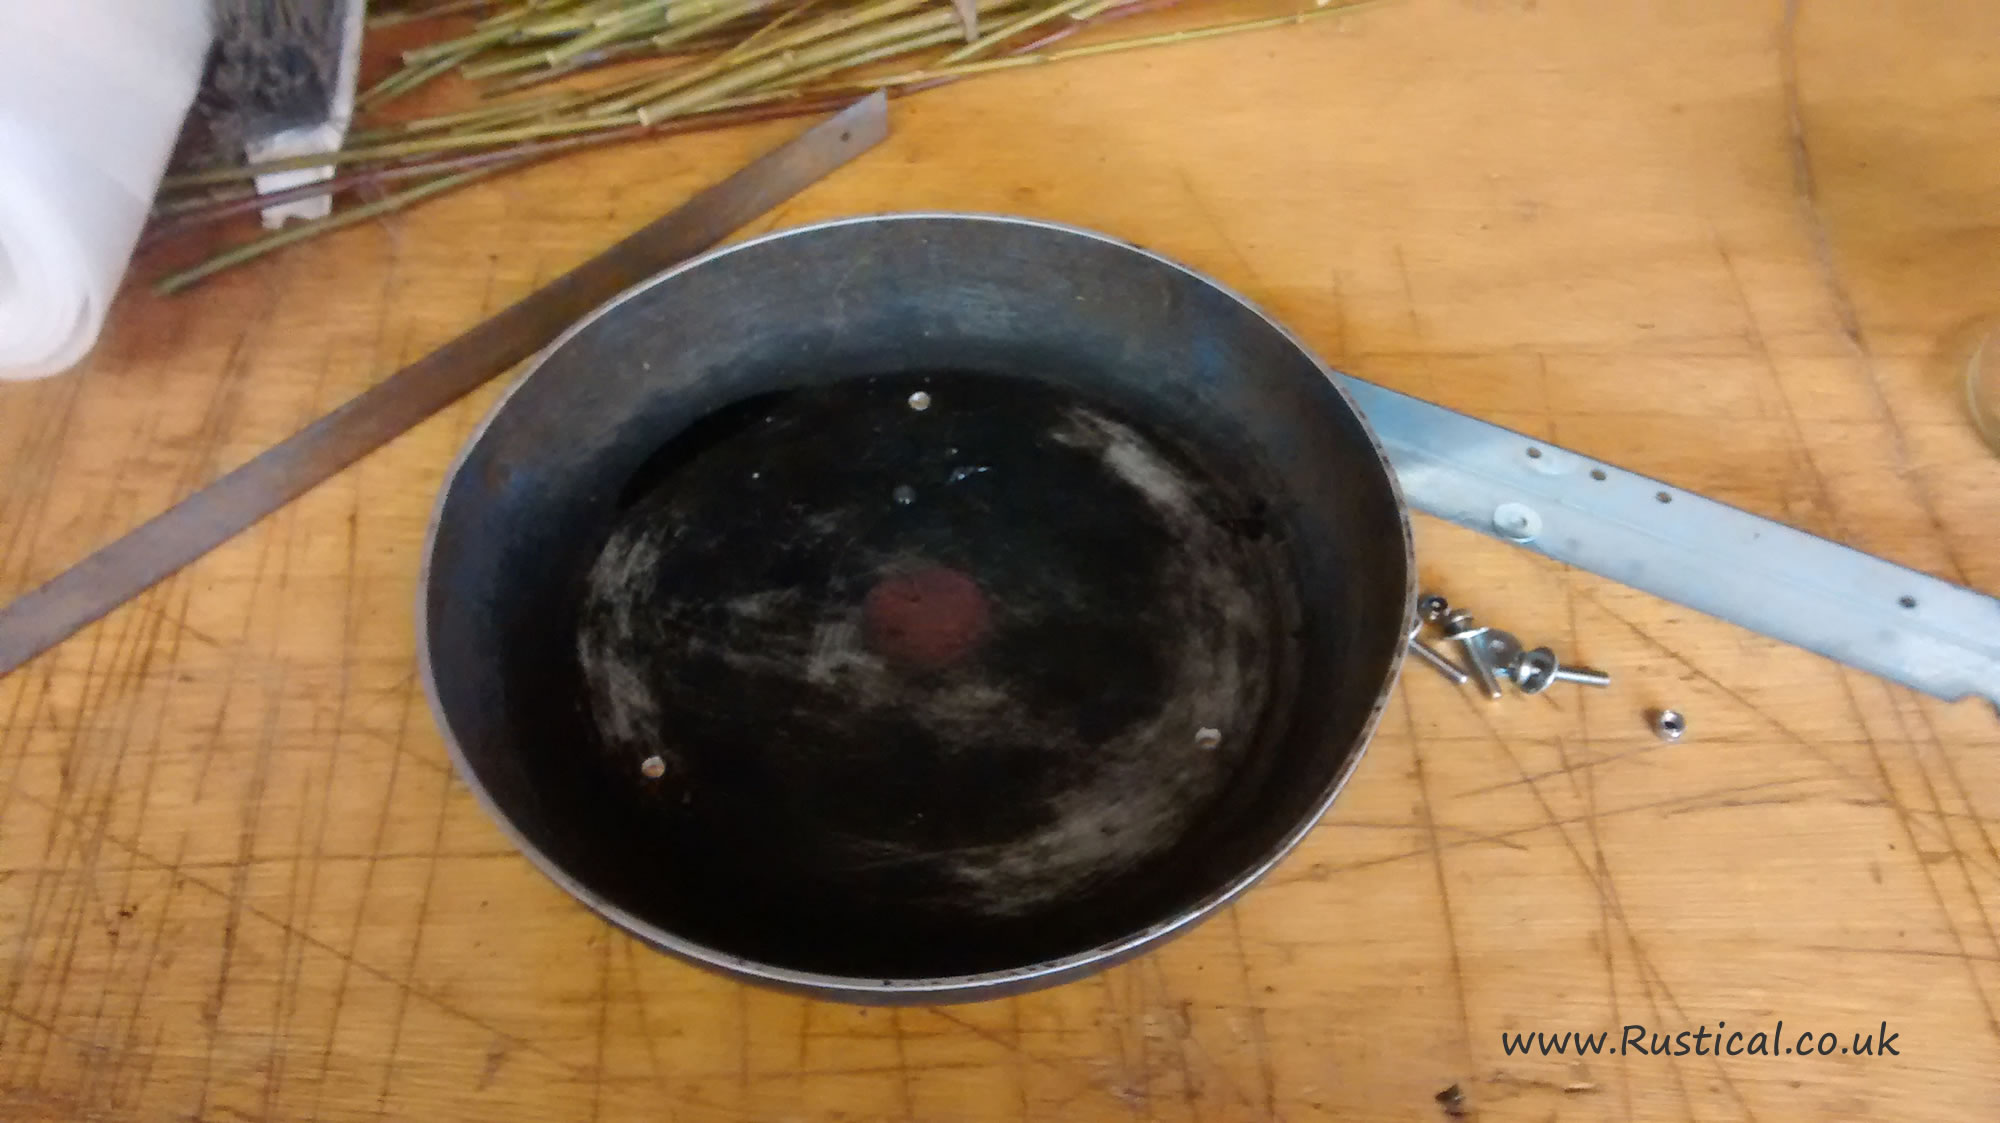 Making wood stove chimney cowl from a frying pan